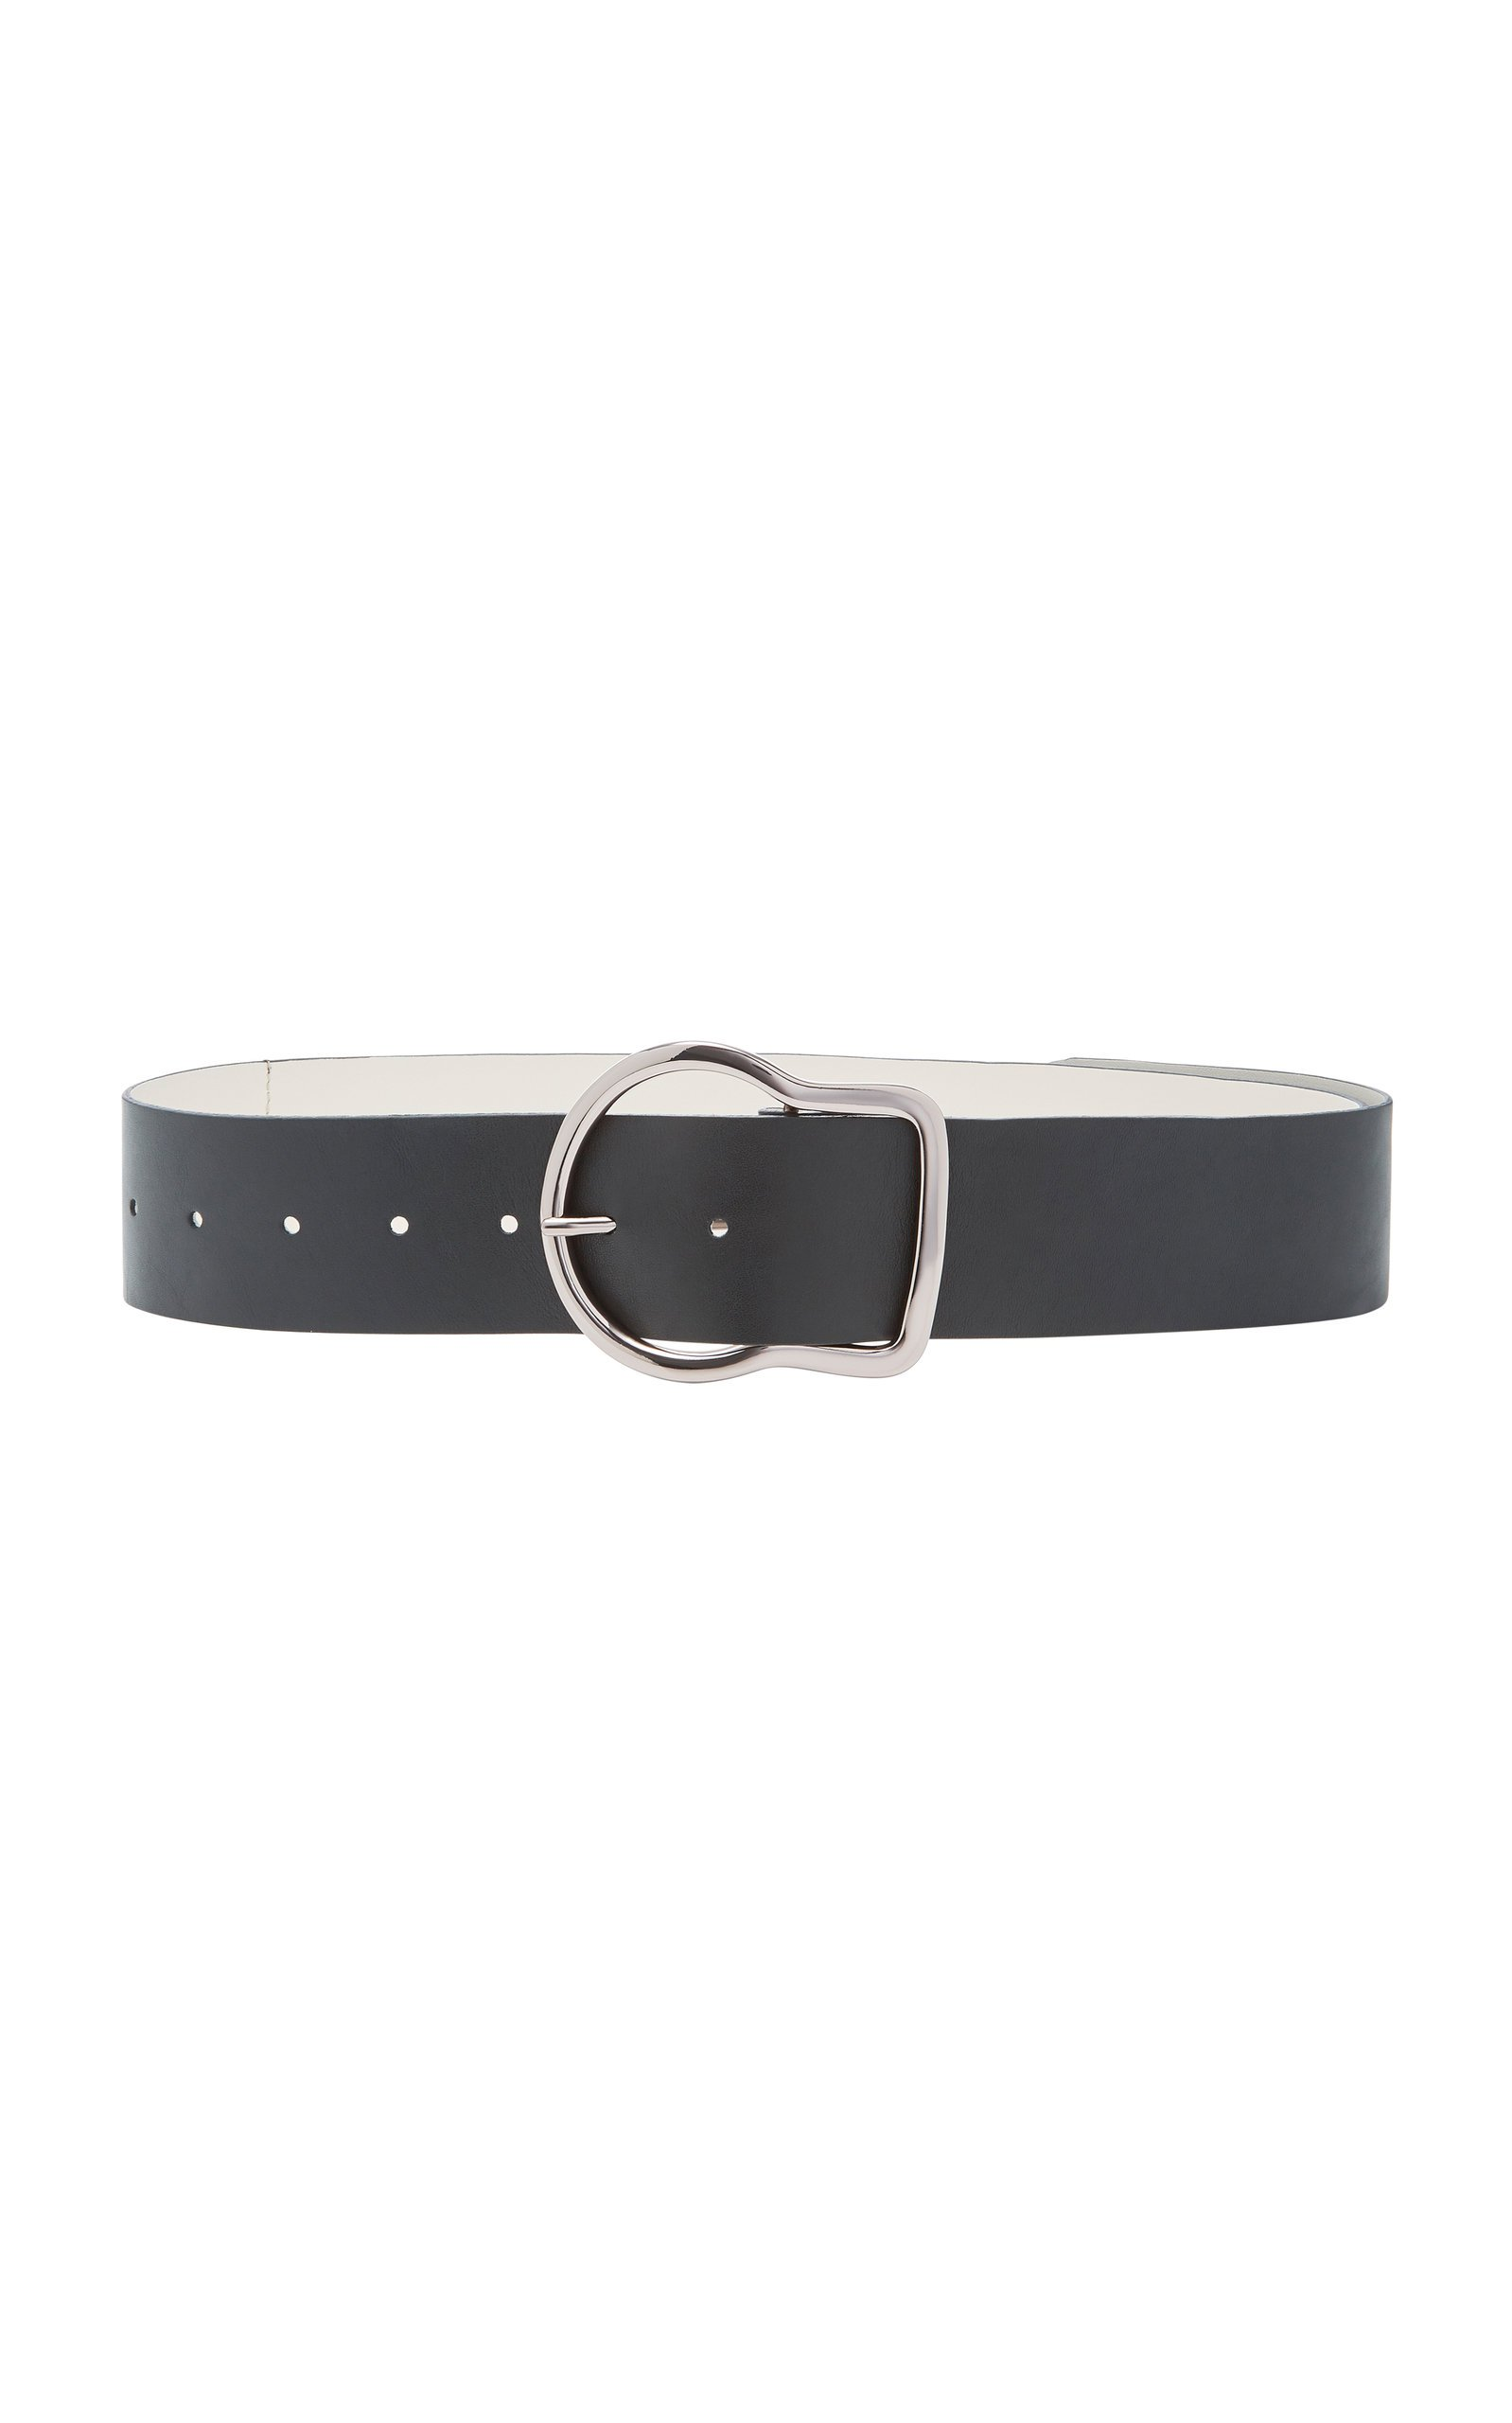 Dorothee Schumacher Buckled Leather Belt